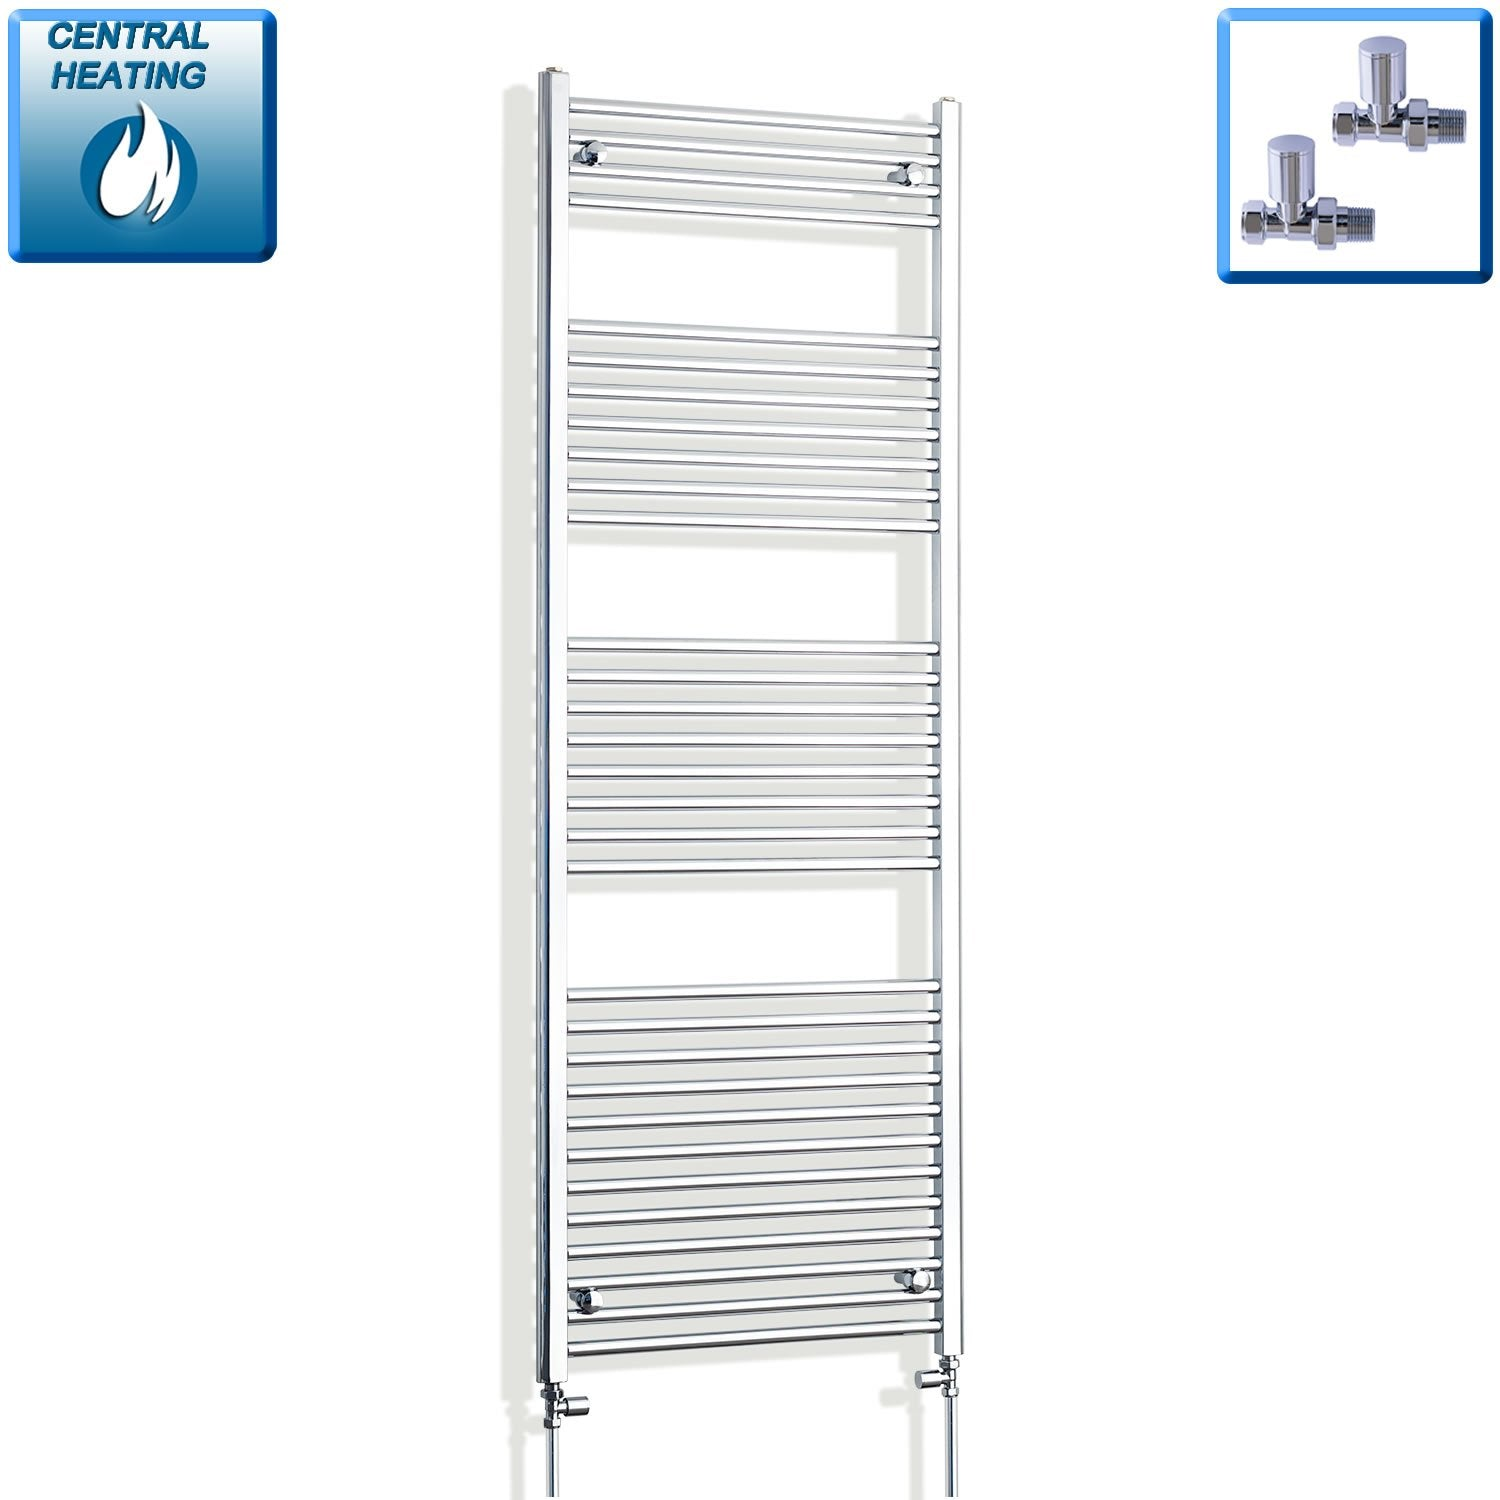 650mm Wide 1800mm High Flat Chrome Heated Towel Rail Radiator HTR,With Straight Valve